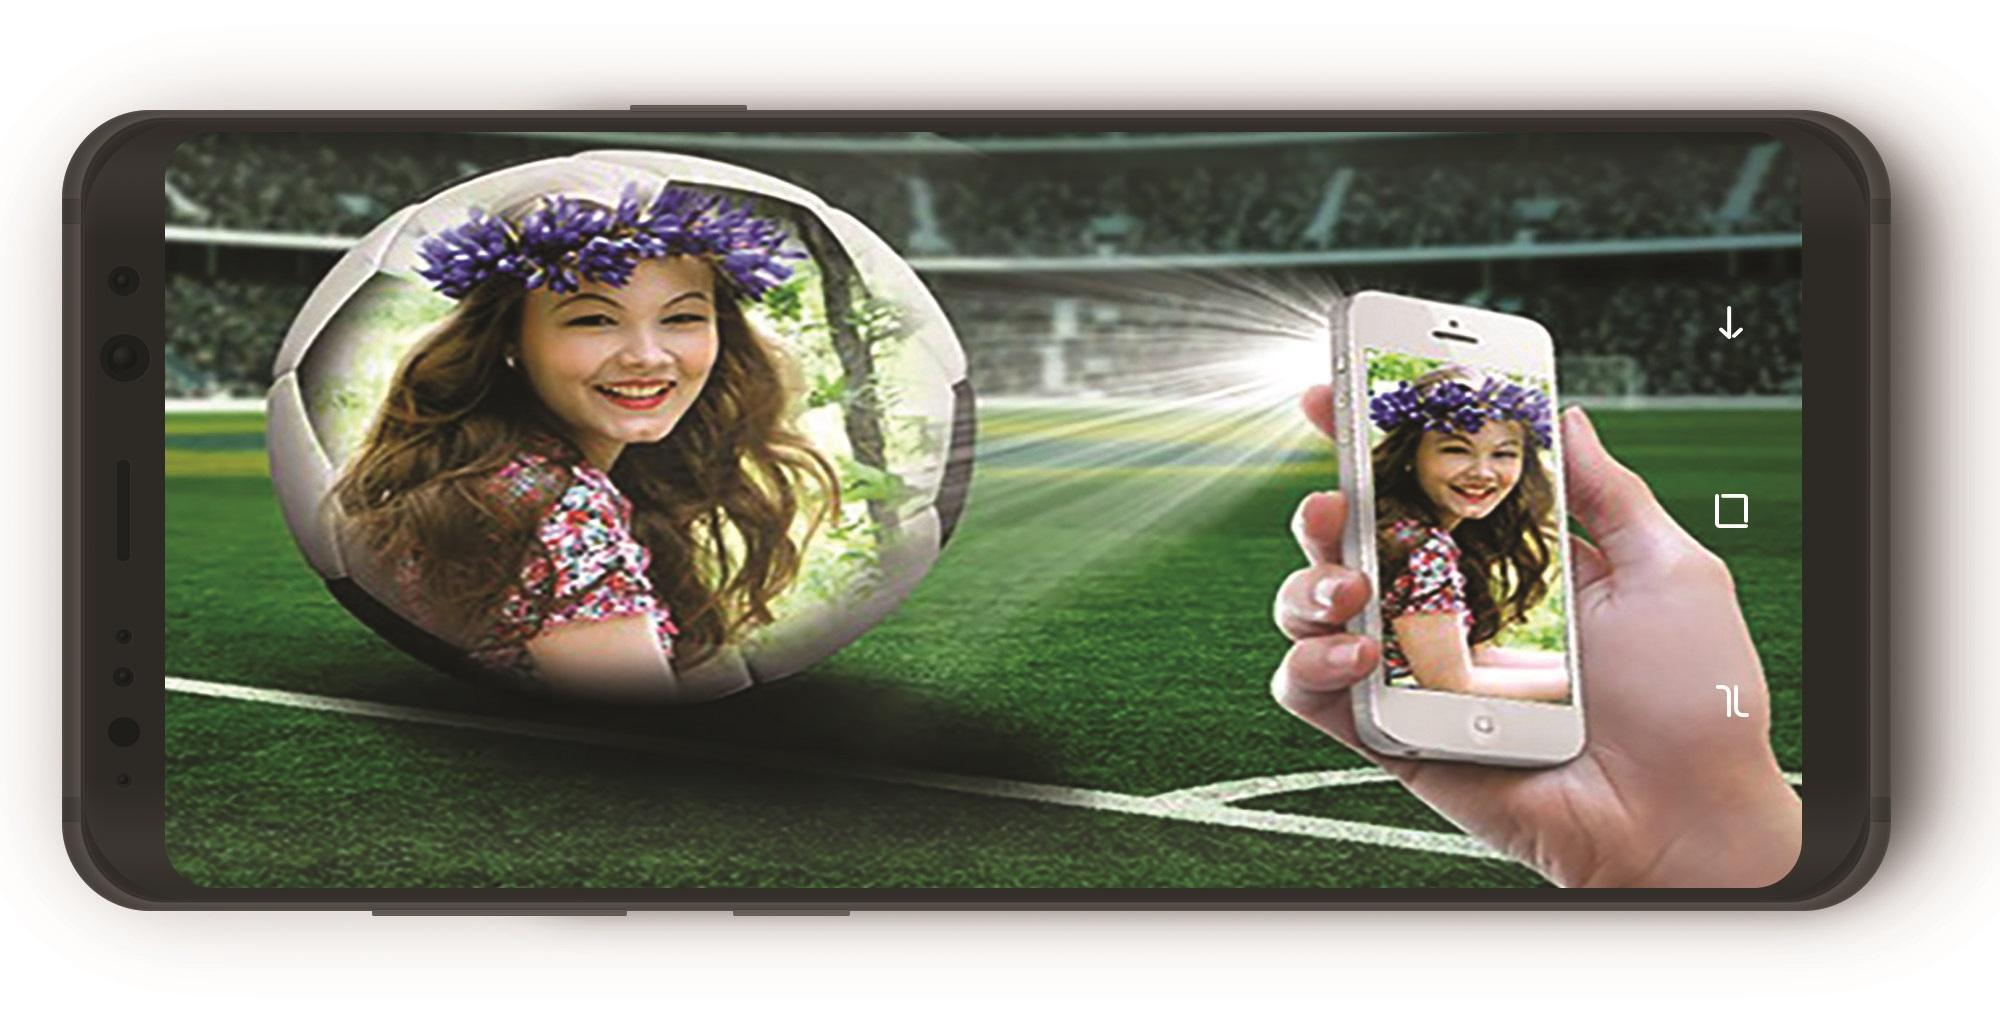 Face Projector Photo Editor 2018 for Android - APK Download